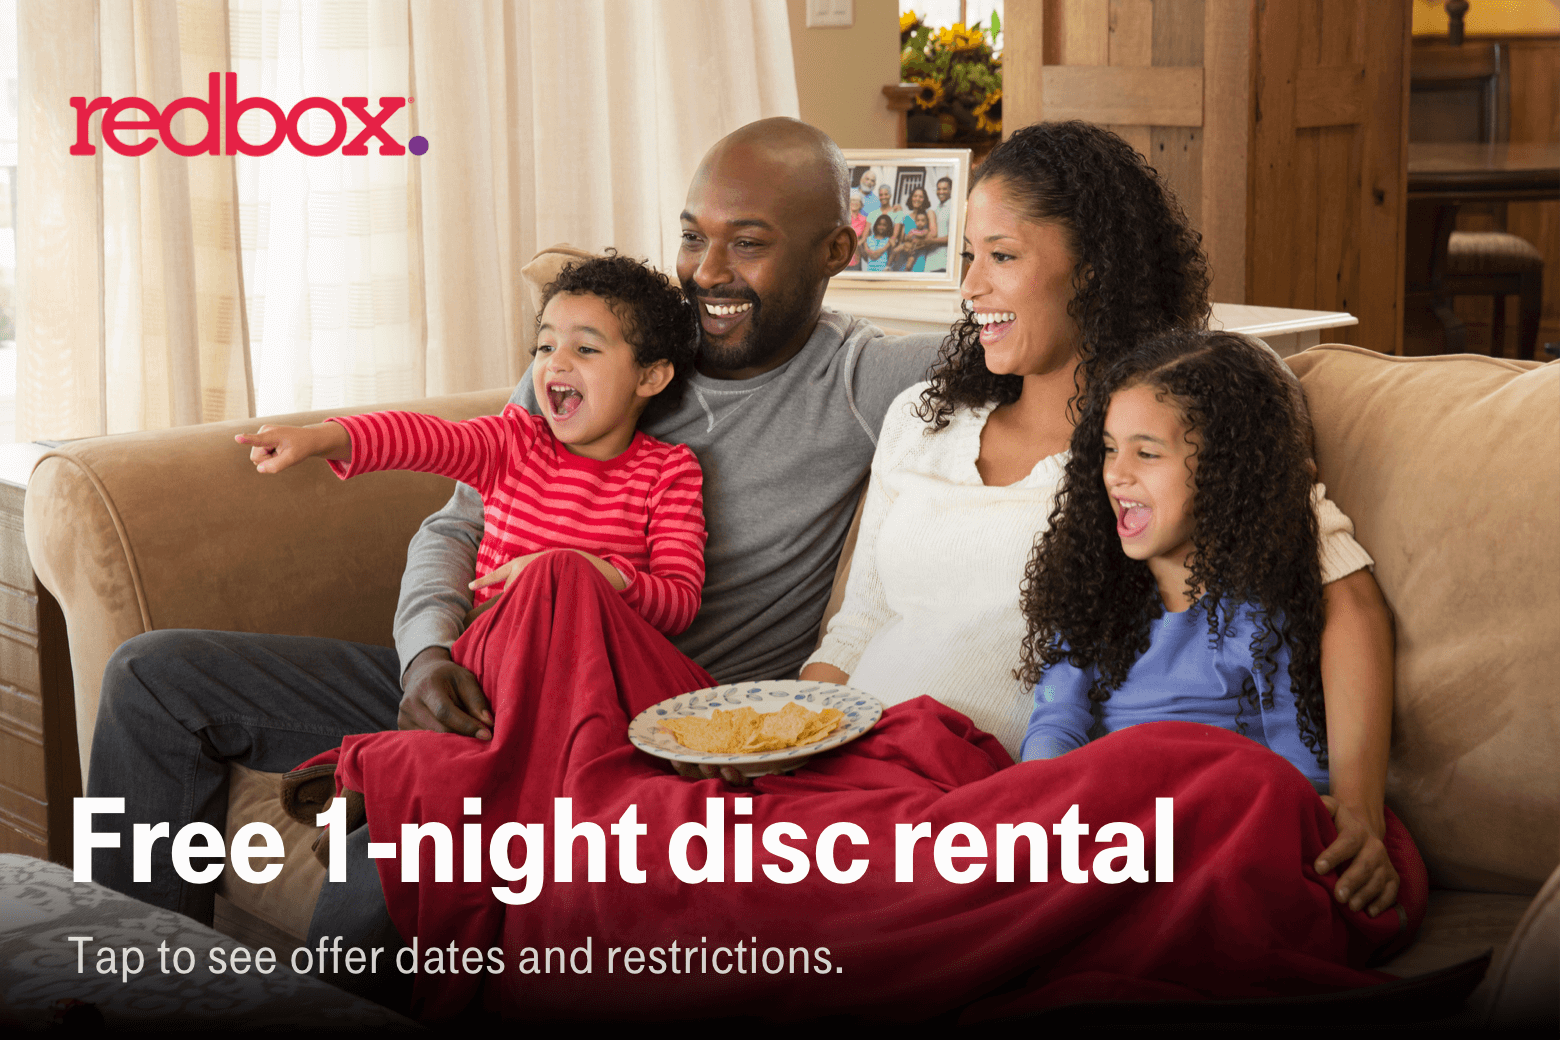 Redbox. Free 1-night disc rental. Tap to see offer dates and restrictions.